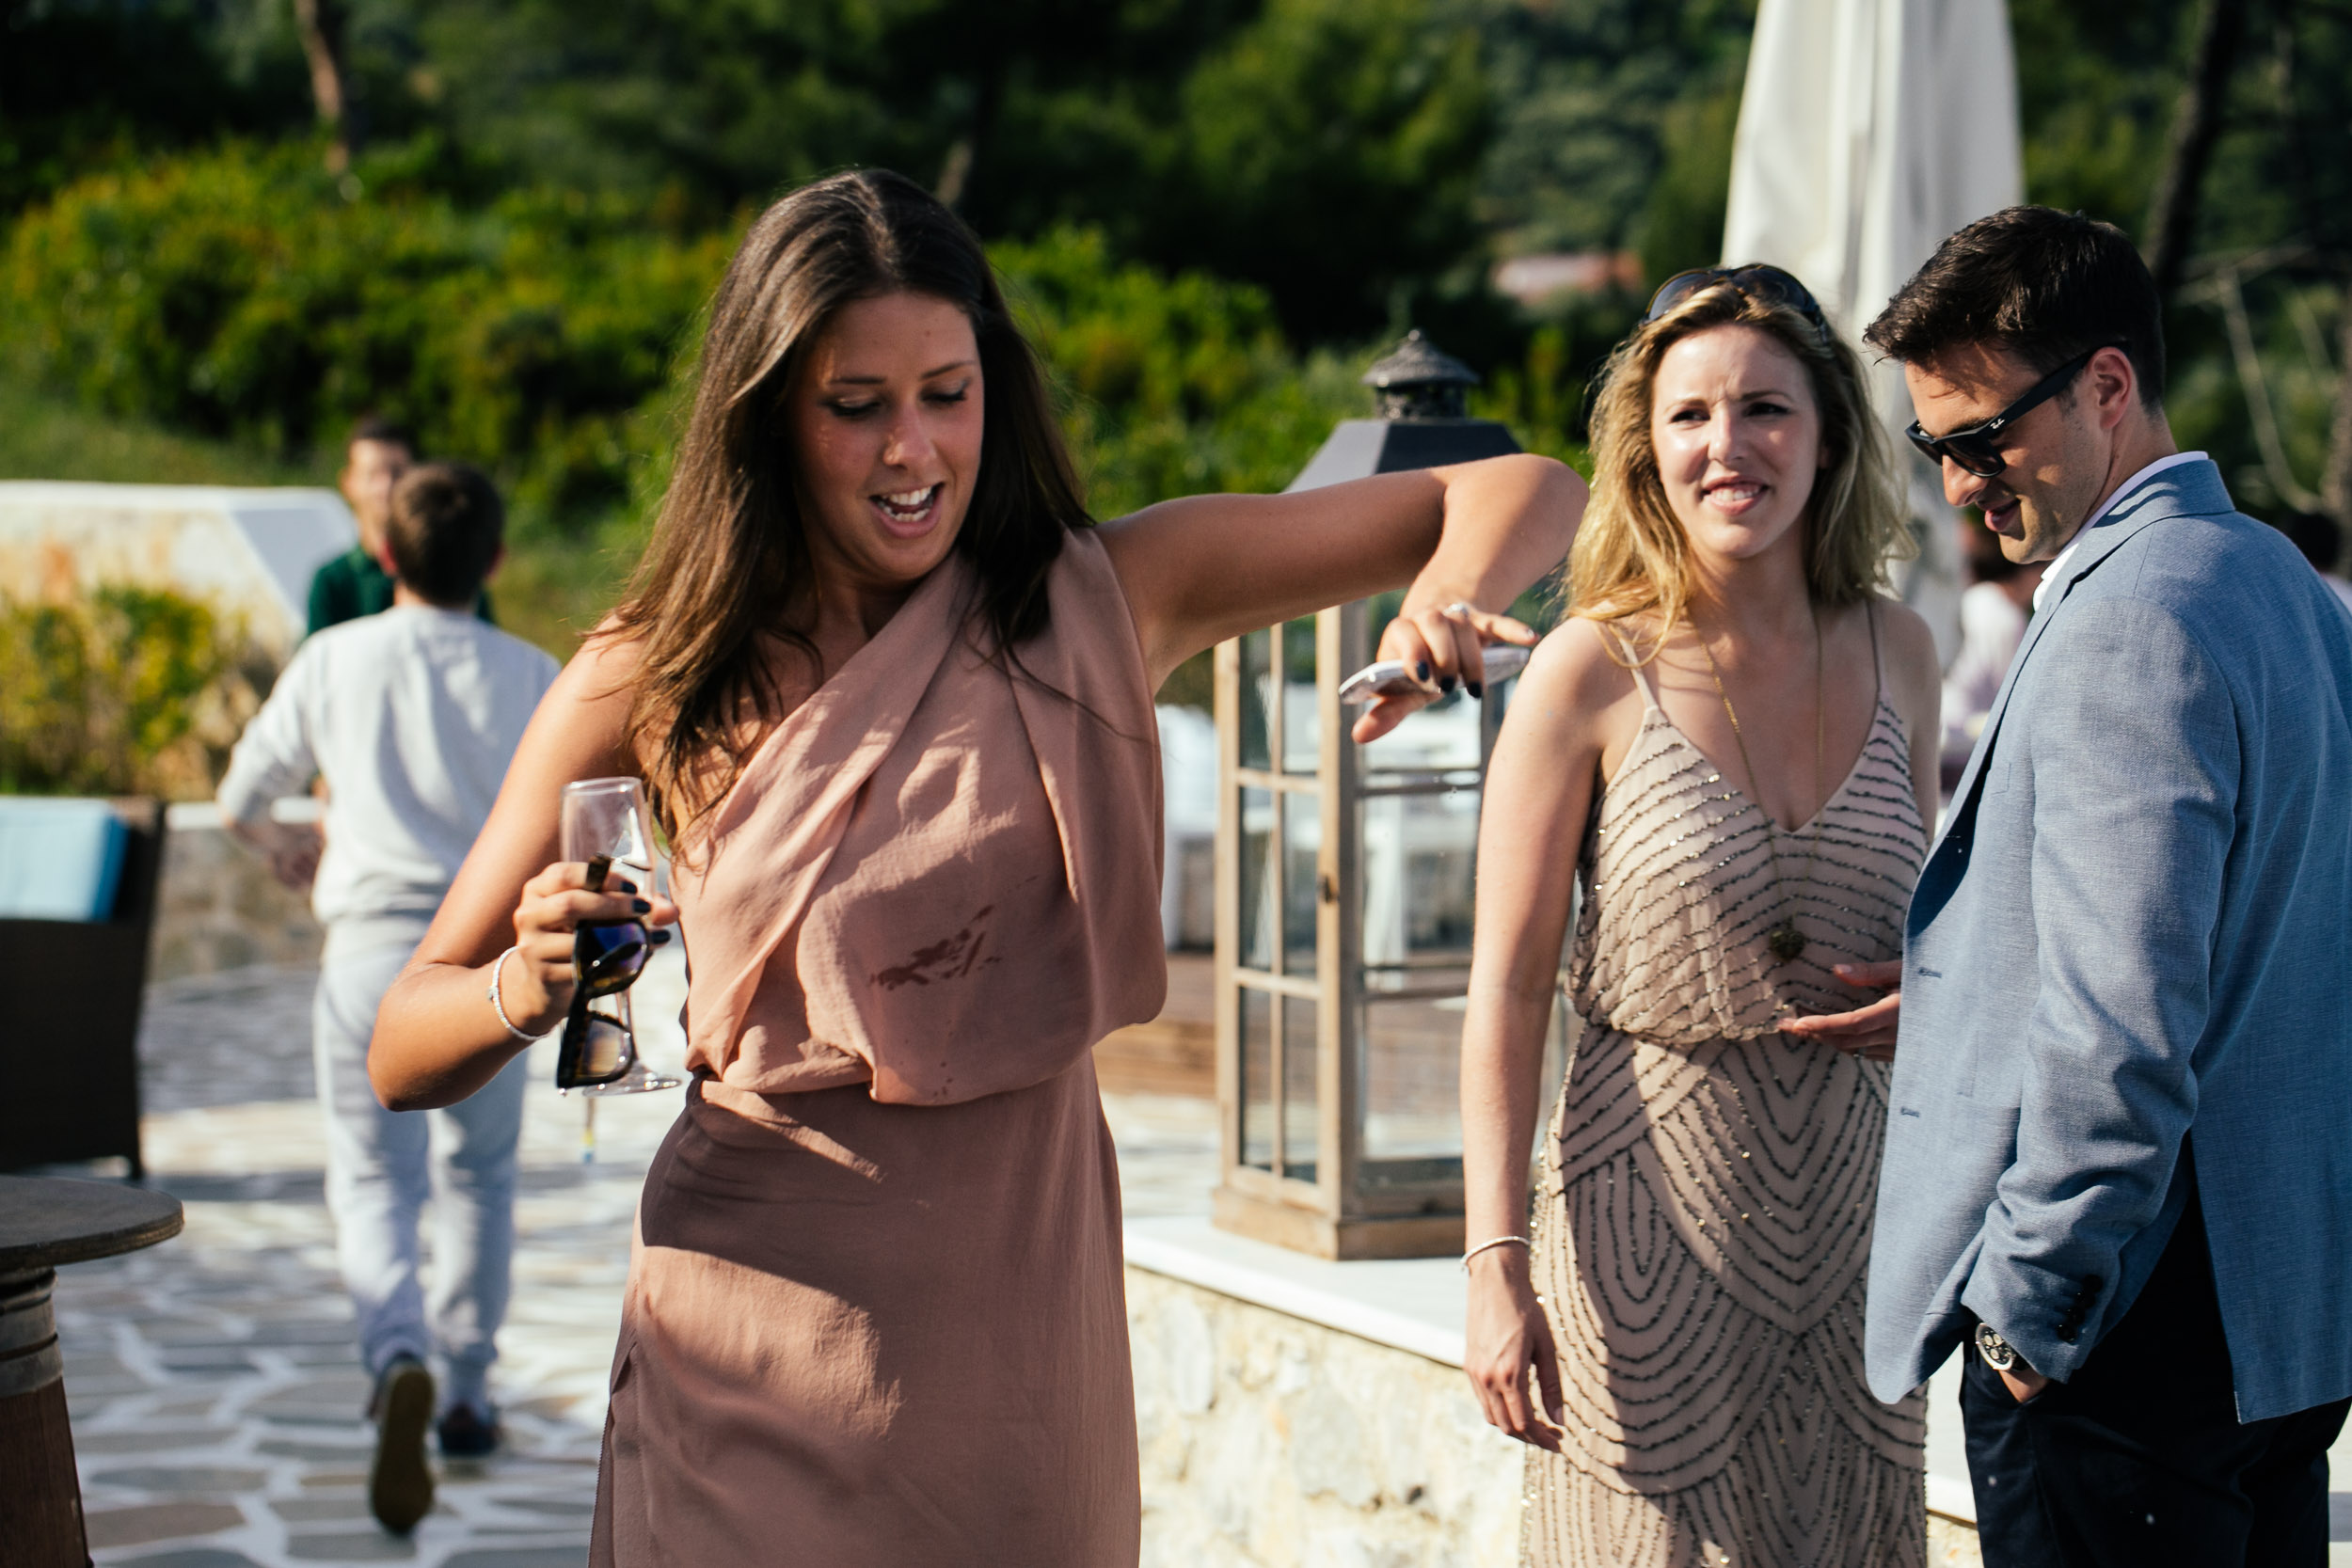 amy-marko-wedding-skiathos067.jpg